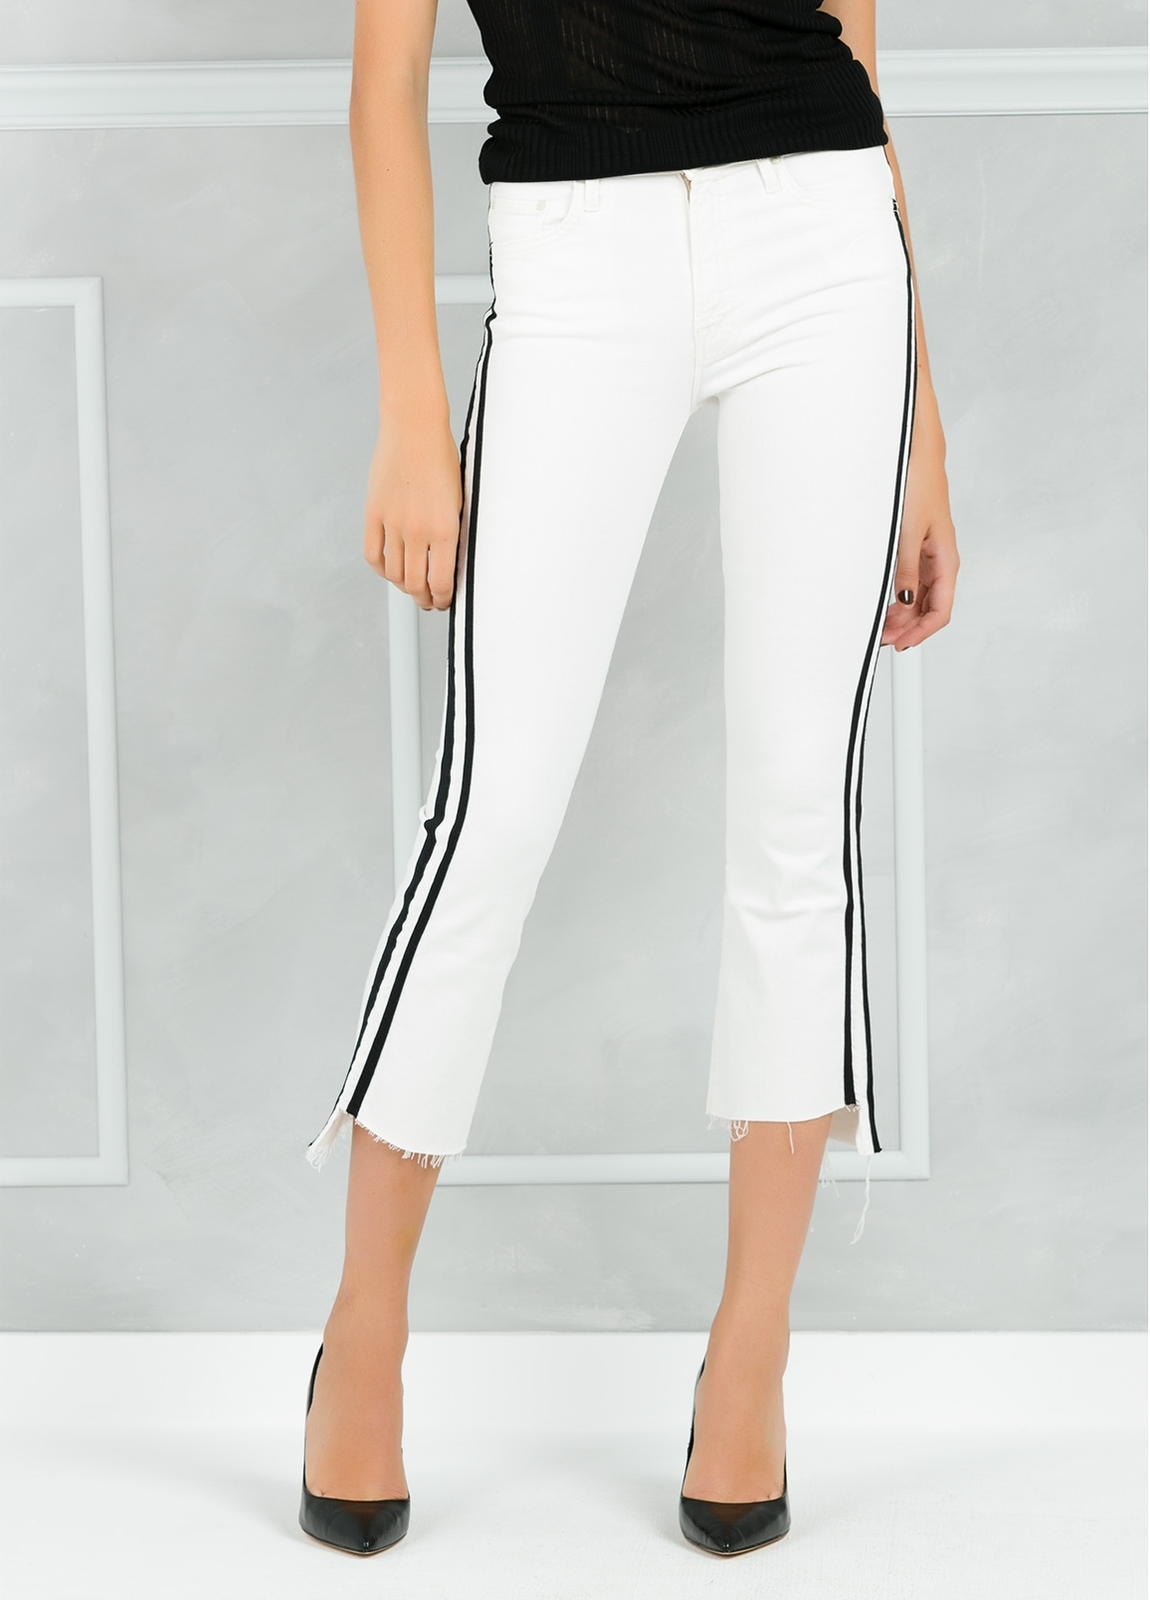 Pantalón tejano SIDE STRIPE JEANS color blanco y raya lateral negra.